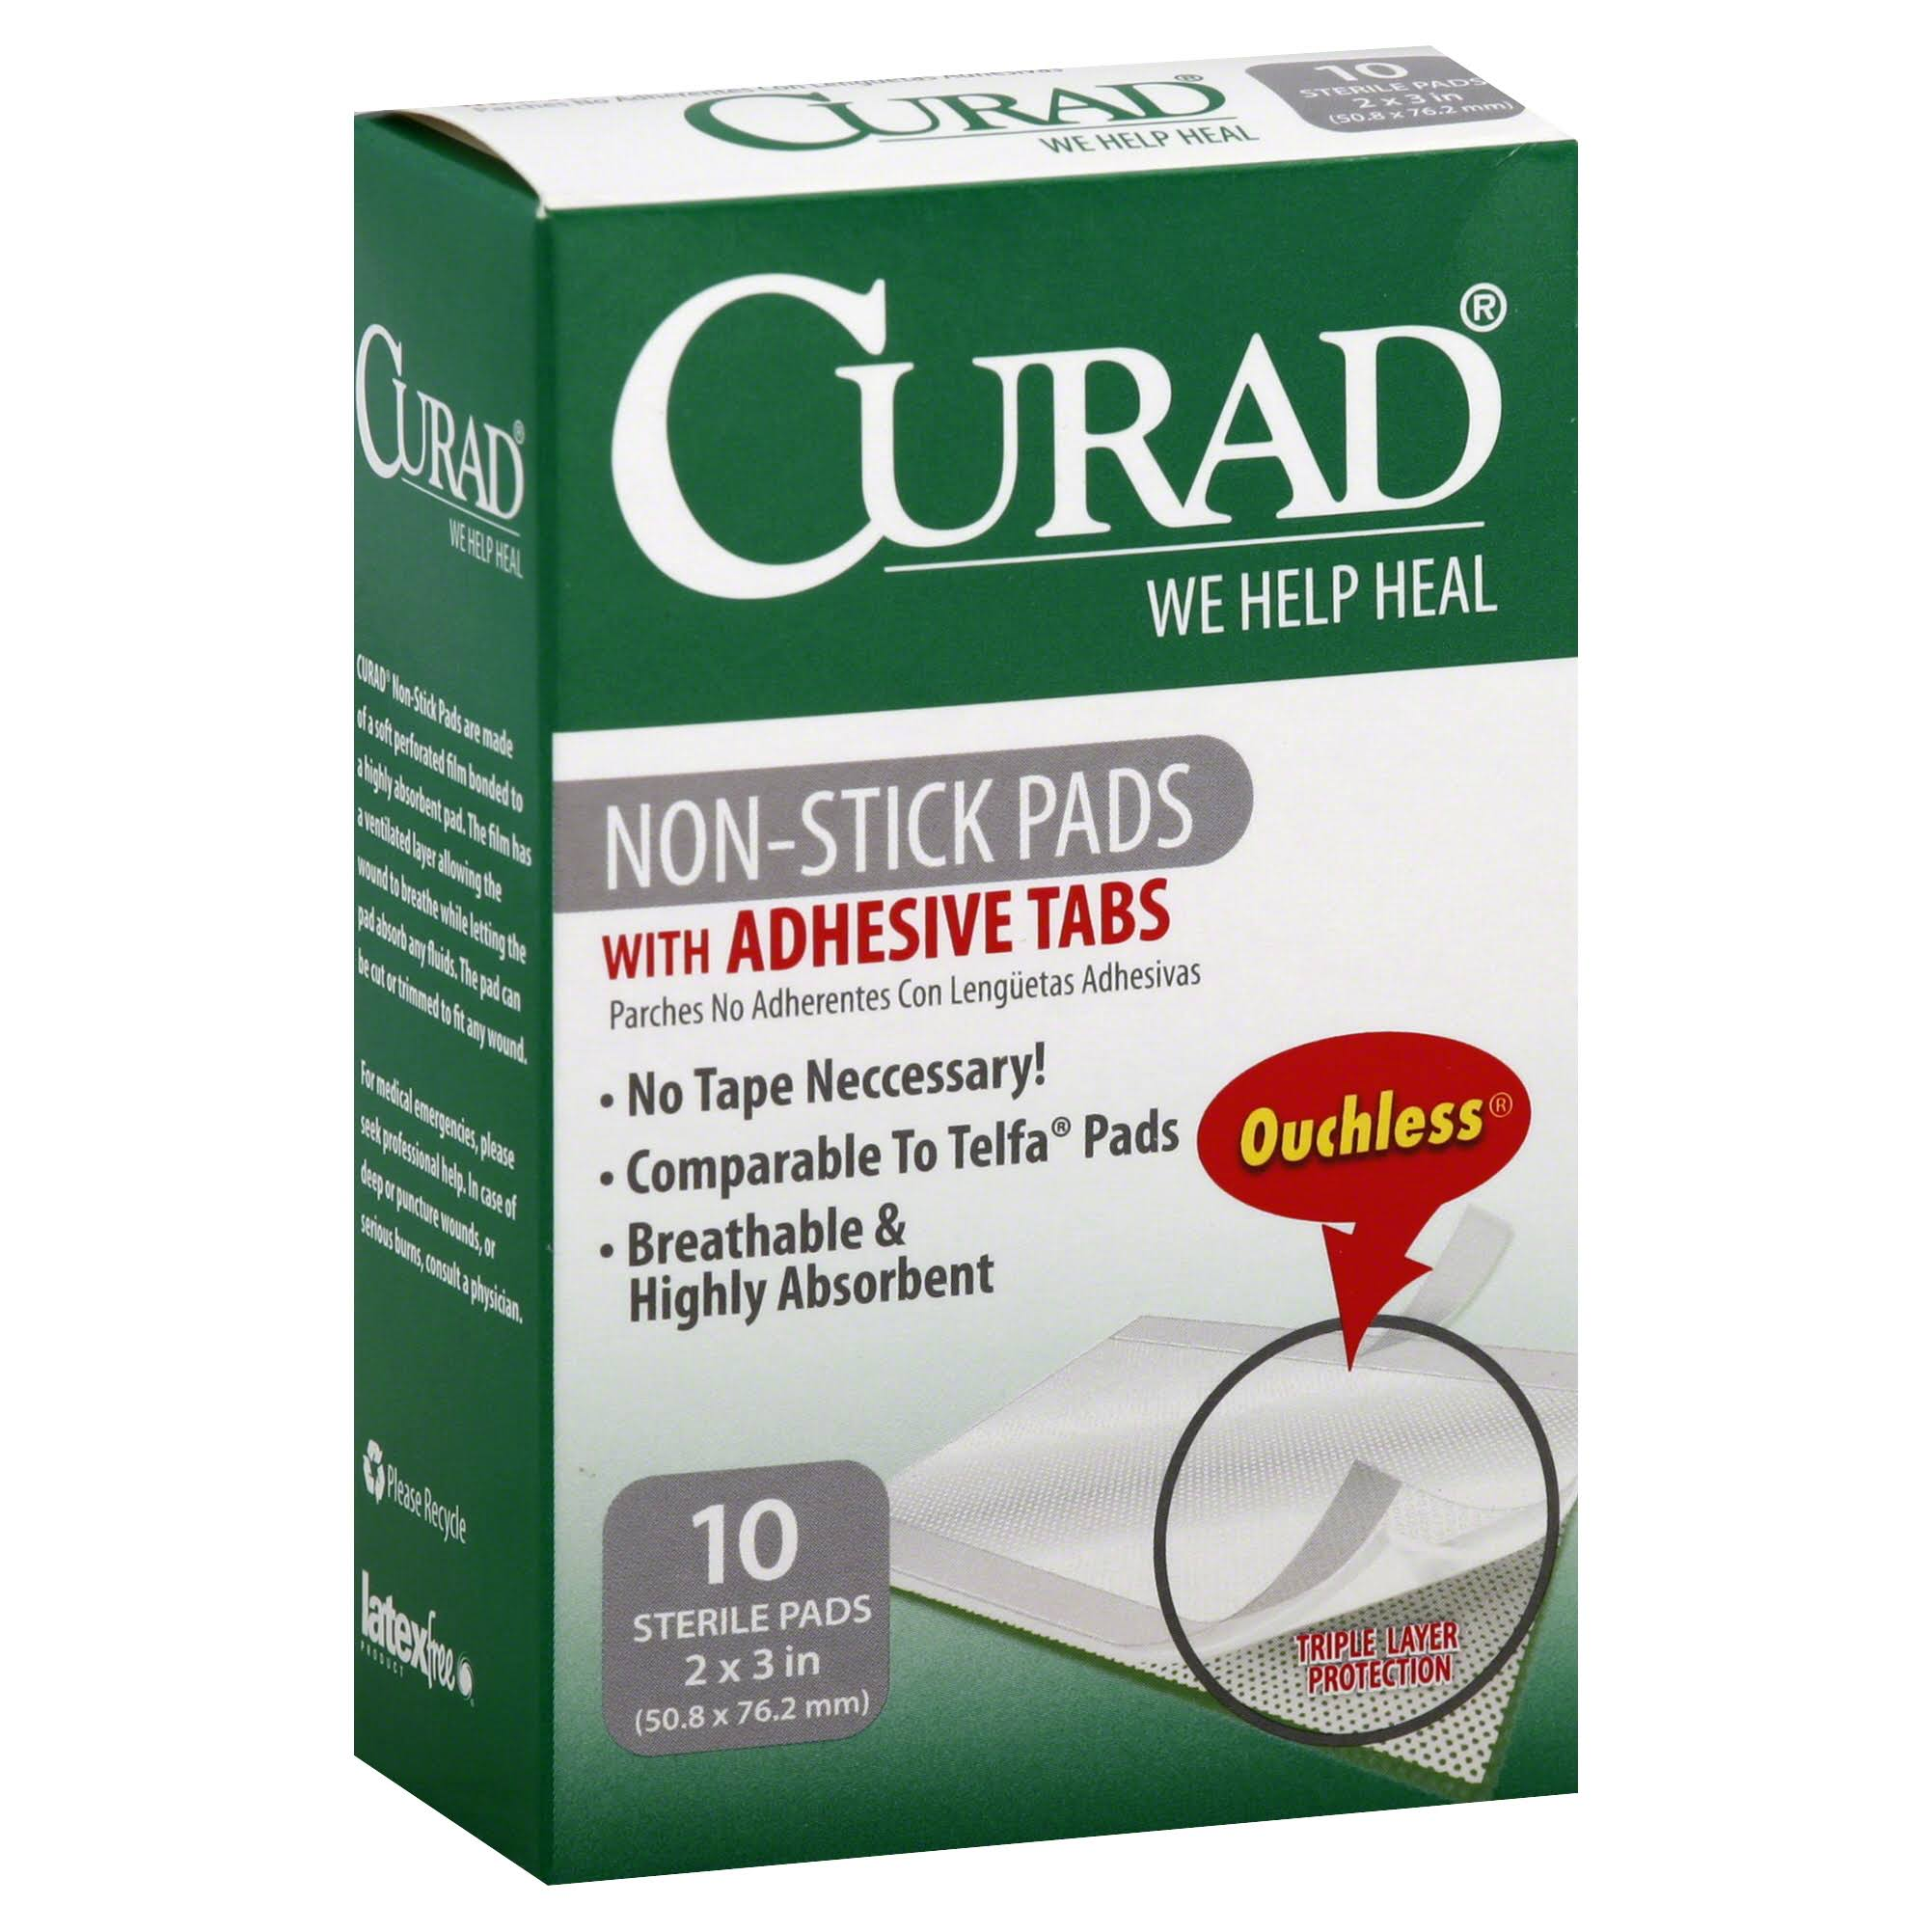 Curad Non-Stick Pads With Adhesive Tabs - 10 Sterile Pads